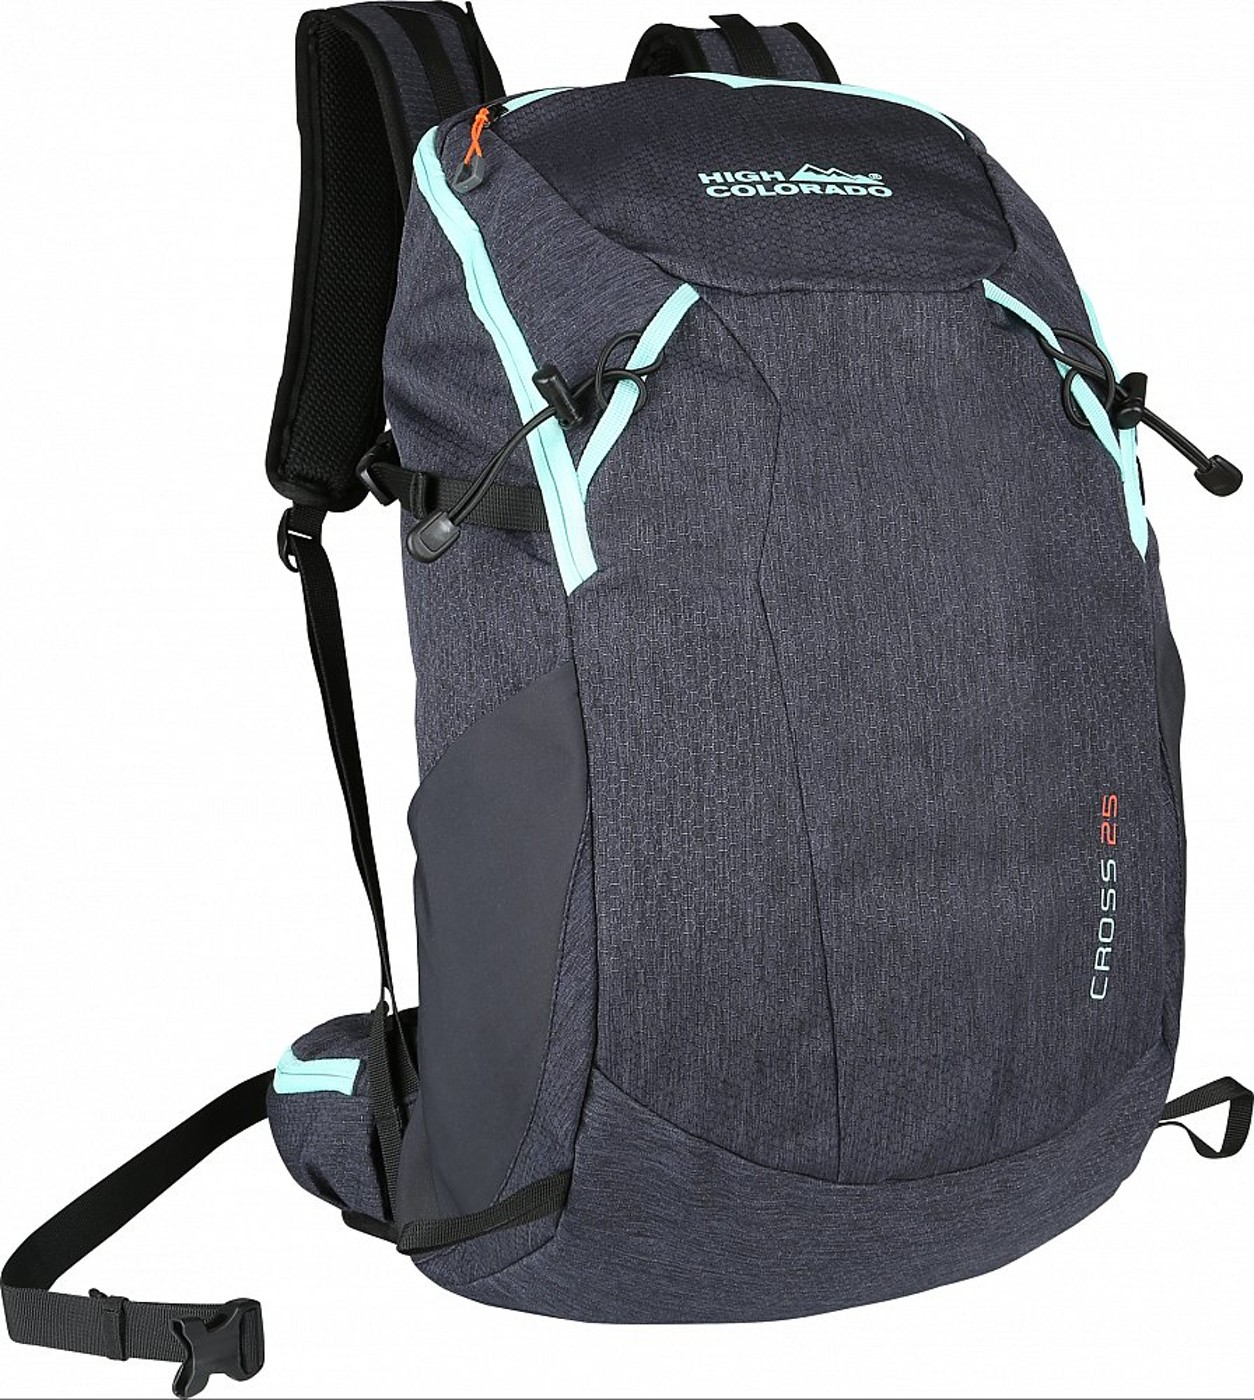 HIGH COLORADO CROSS 28, Hiking backpack